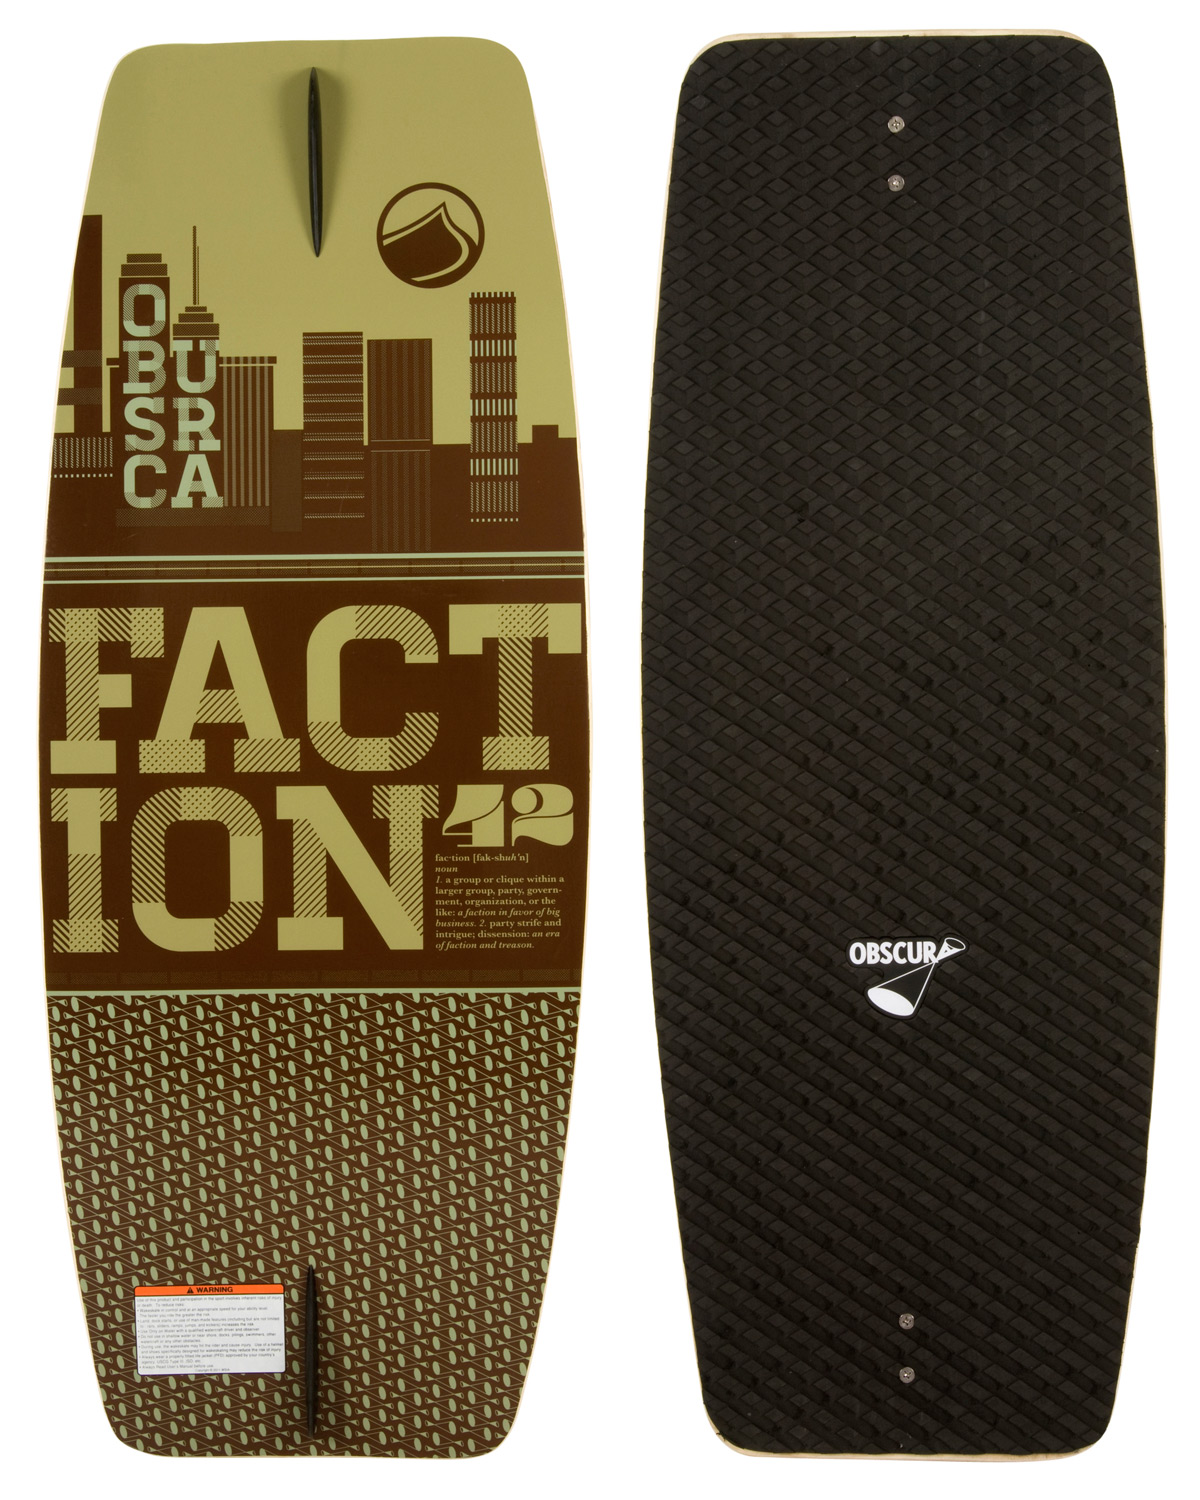 Skateboard The Faction is the perfect wake skate to learn and progress on. This value price skate features a super forgiving outline with a foam top traction pad to help you learn the basics and guide you along. If you are new to wake skating or just looking to get your first deck, there is no better board to start your skate journey on than the Faction!Key Features of the Liquid Force Faction Wakeskate: New Board Outline: For 2013 we updated the outline of the board, to have more midsection and continuous outline shape, for a better edge hold and more consistent feel under your feet. New EVA Deck: Deck comes with applied die cut machined EVA grip that has been redesigned for this year. The grip offers much improved traction and Obscura logo branding Progressive 3 Stage Rocker: A mixture of aggressive 3 stage and continuous rocker, this rocker profile allows the board to stay under your feet as you edge or leave the wake. Single concave: The progressive 3 stage rocker is complimented with a single concave throughout the board that helps the board track even truer, with a fin or without, when you are on edge. Wood Construction: Decks that are pressed one at a time and individually CNC cut to a shape that will allow any rider, at any level to ride. Once the board is machined it goes thru a varnishing process twice to ensure a quality seal. Constant Rail Edge: The rail of the board is soft throughout. This allows the board to have a forgiving feel. Skate Fin: Comes standard with two 1.0 skate fins. - $84.95